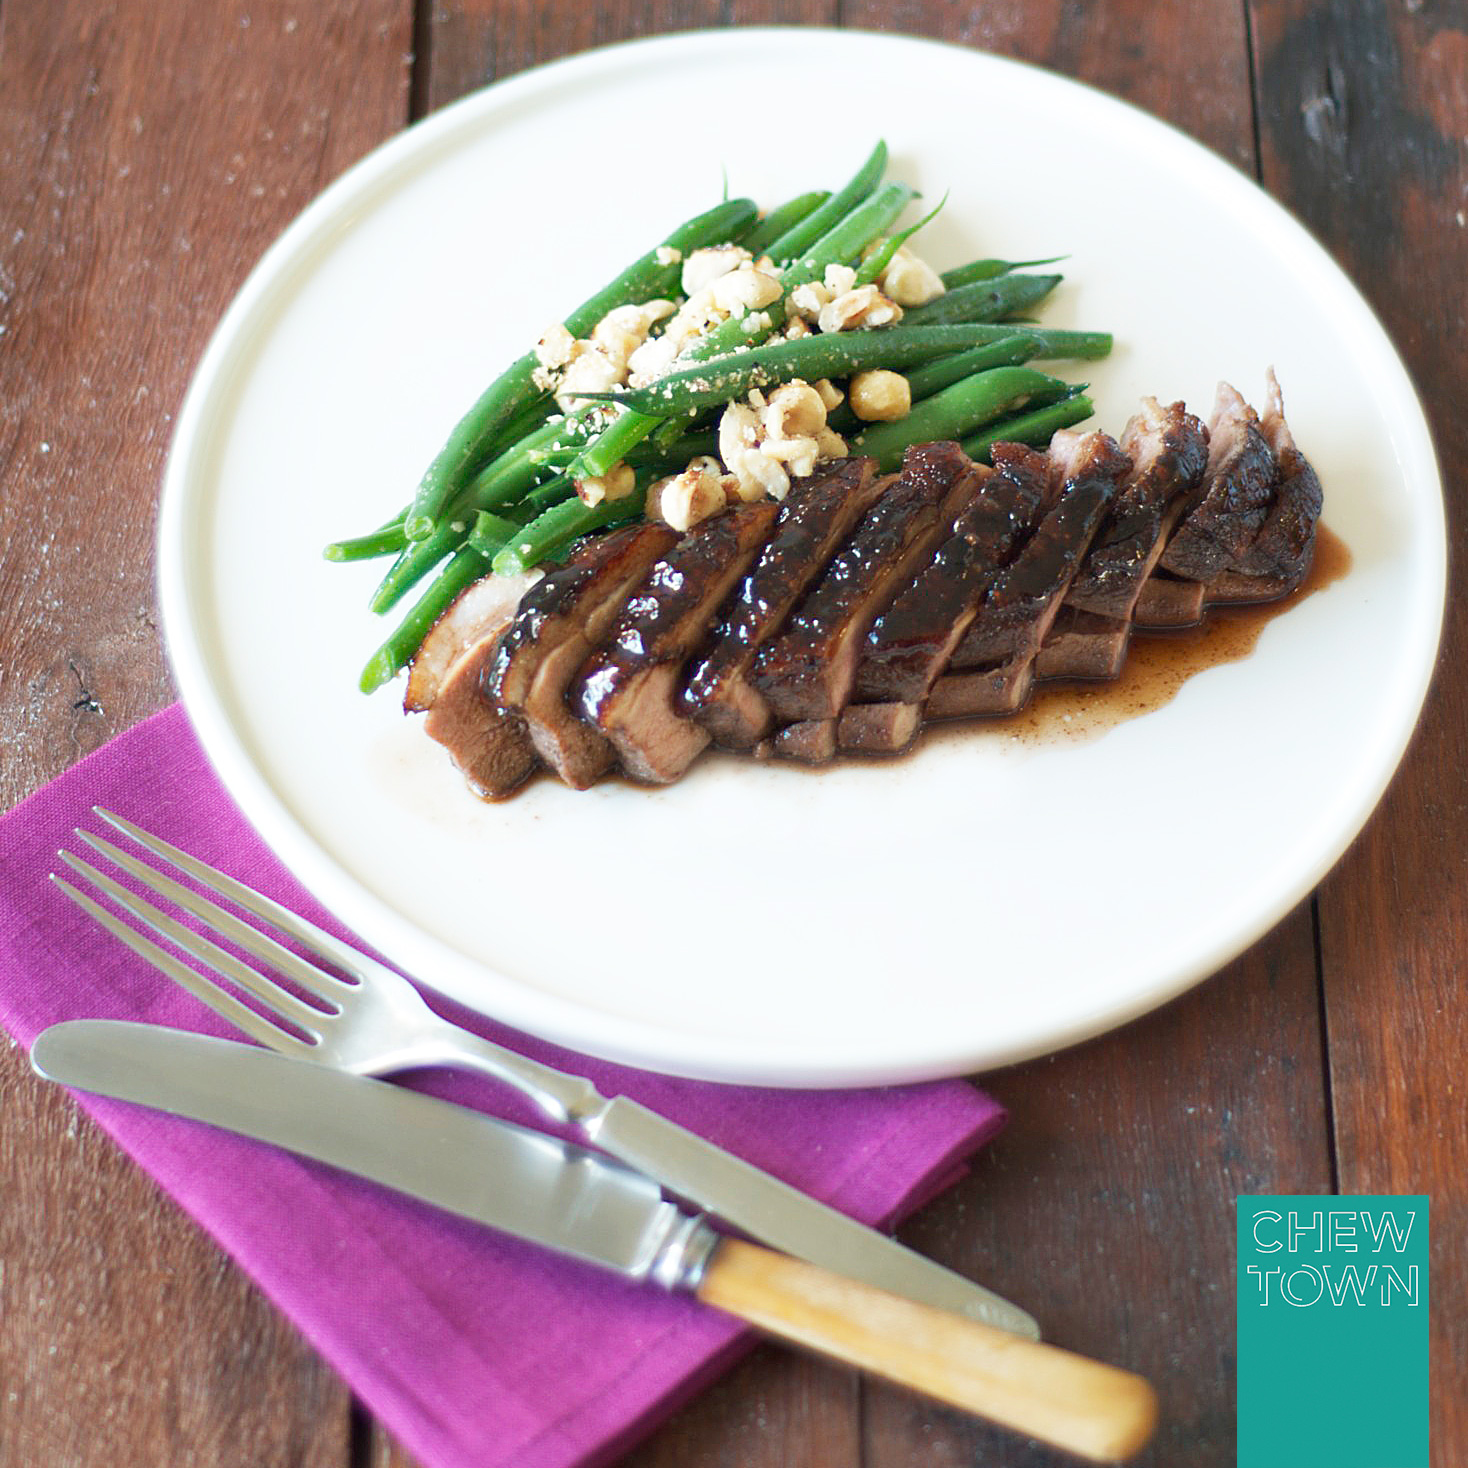 Honey soy glazed duck breast recipe chew town food blog honey soy glazed duck breast forumfinder Choice Image